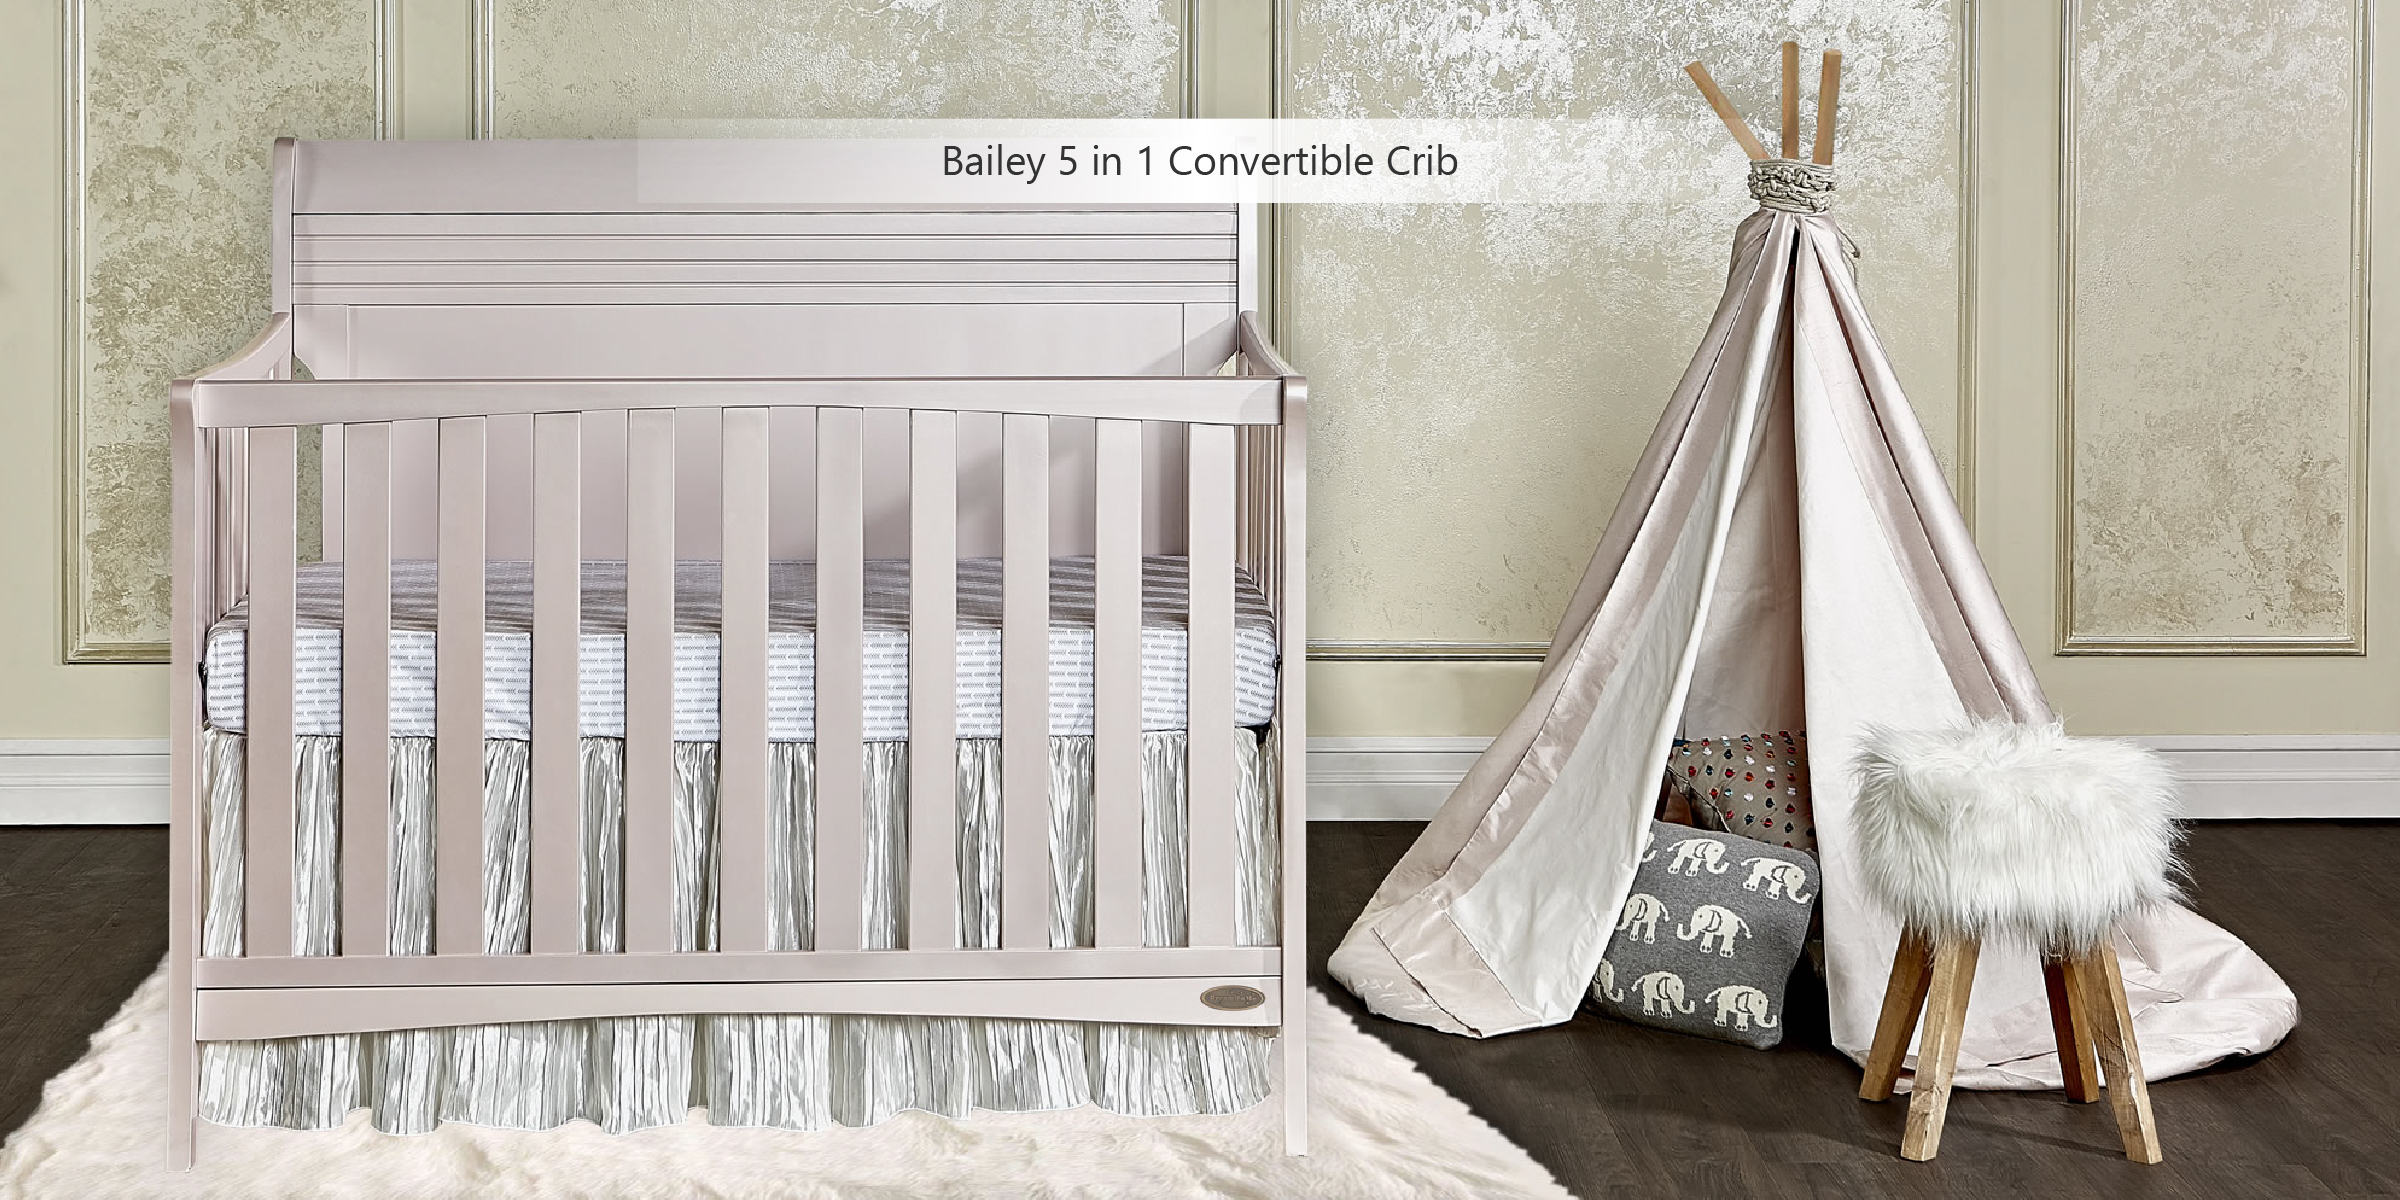 Bailey-5-in-1-Convertible-Crib